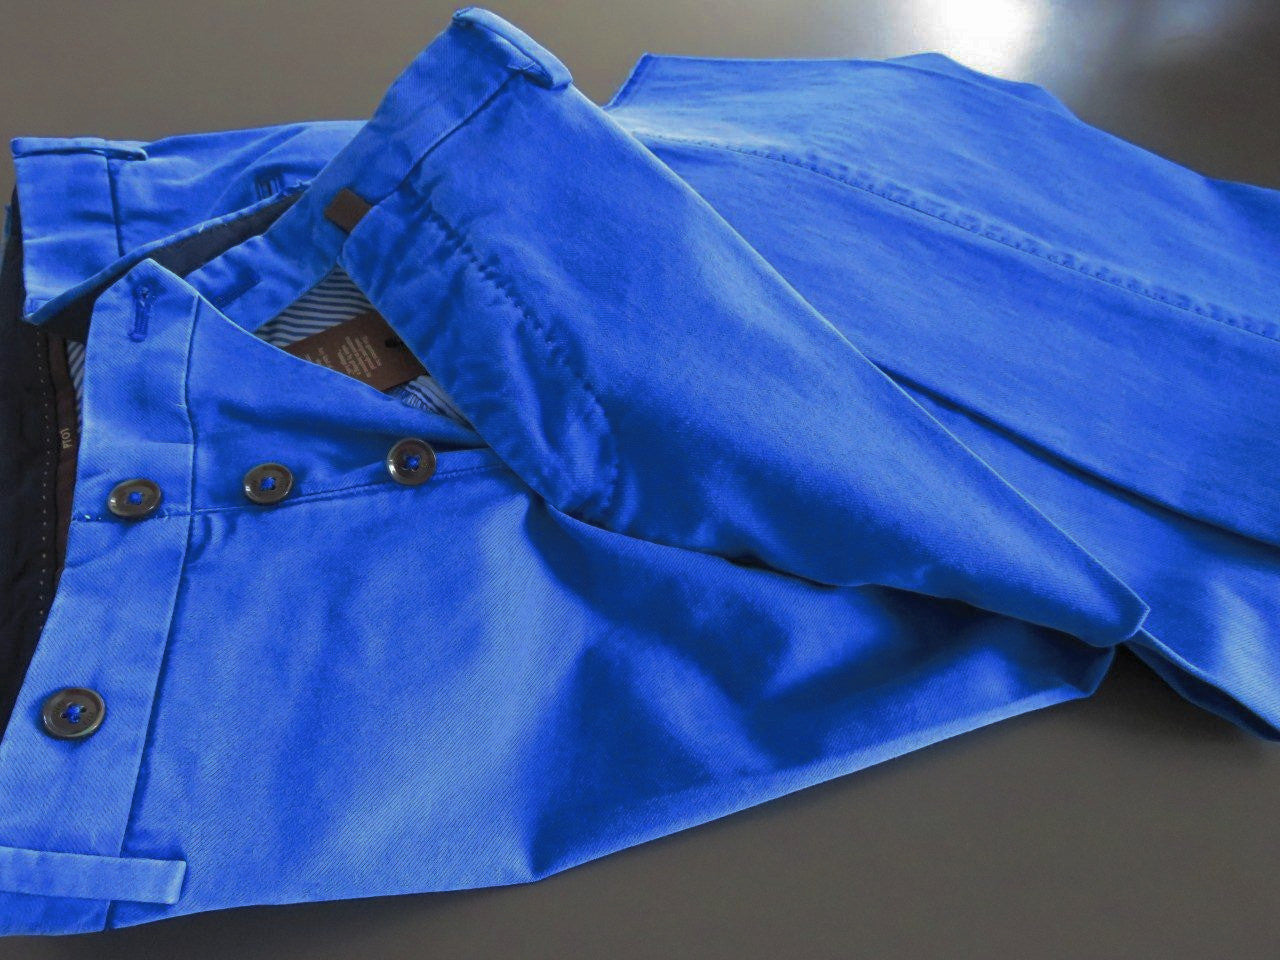 PT01 Pantaloni Torino - Model Business - Blu sky